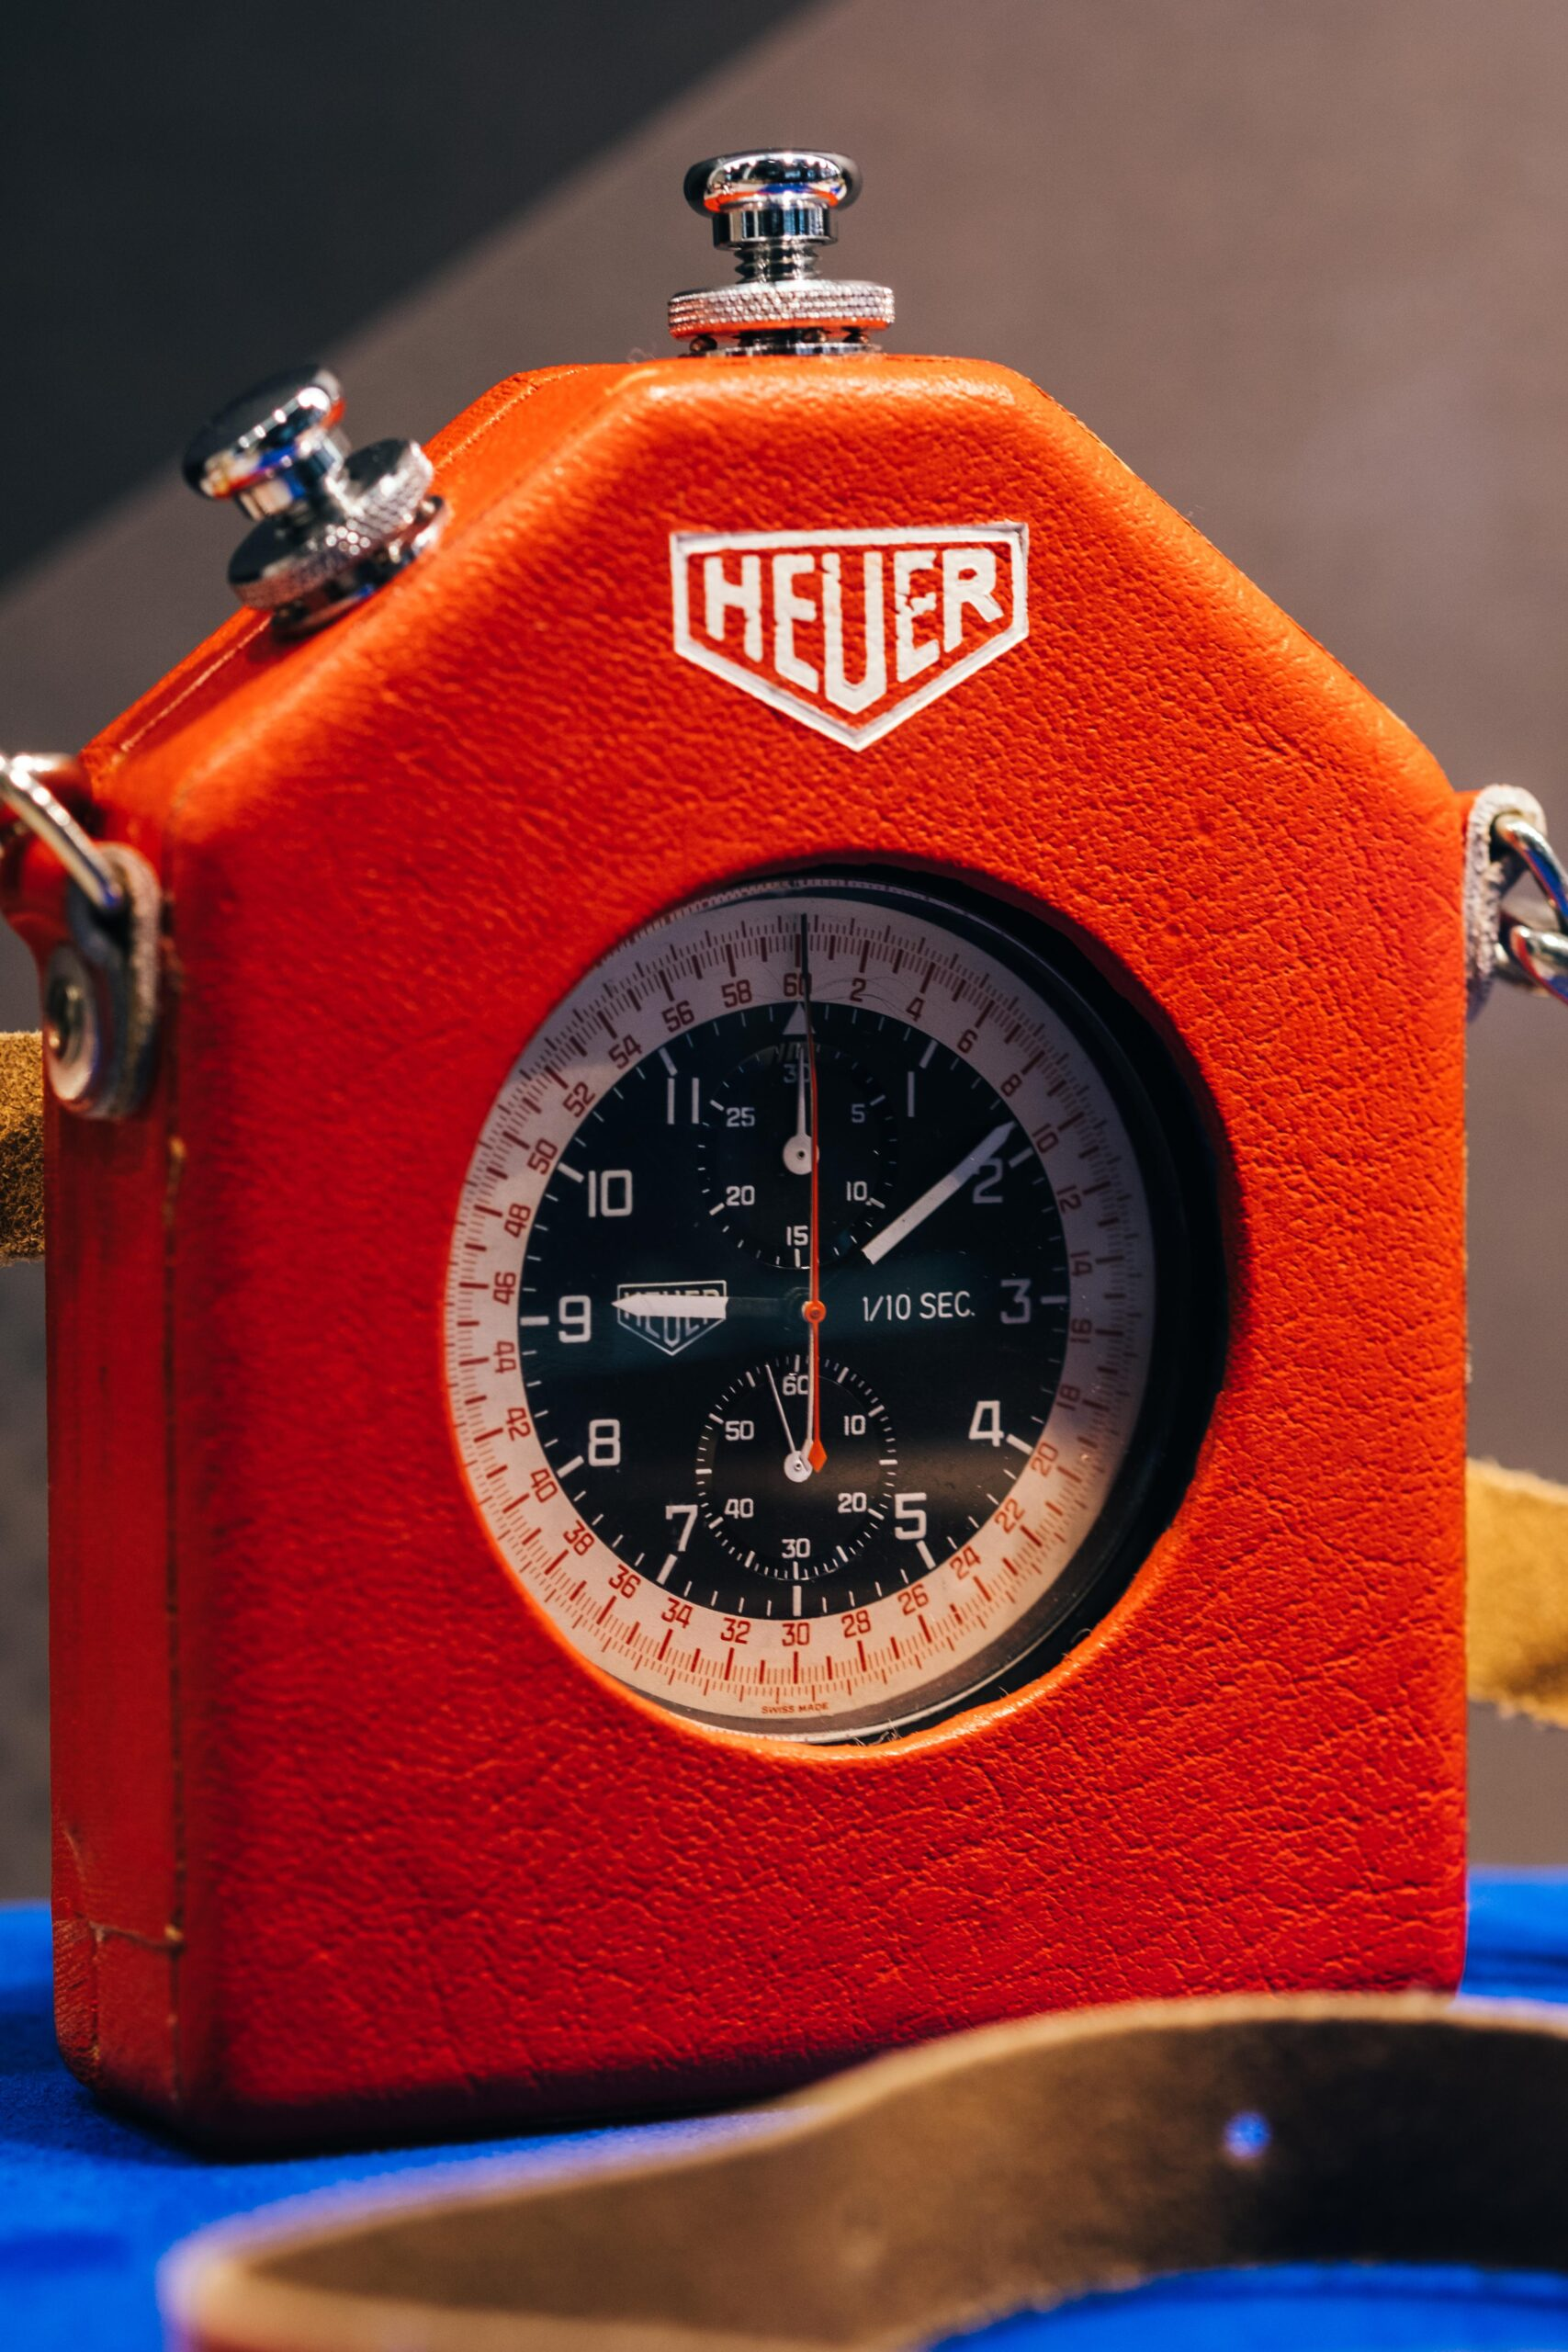 Heuer Split Second Pocket Chronograph with red carry box